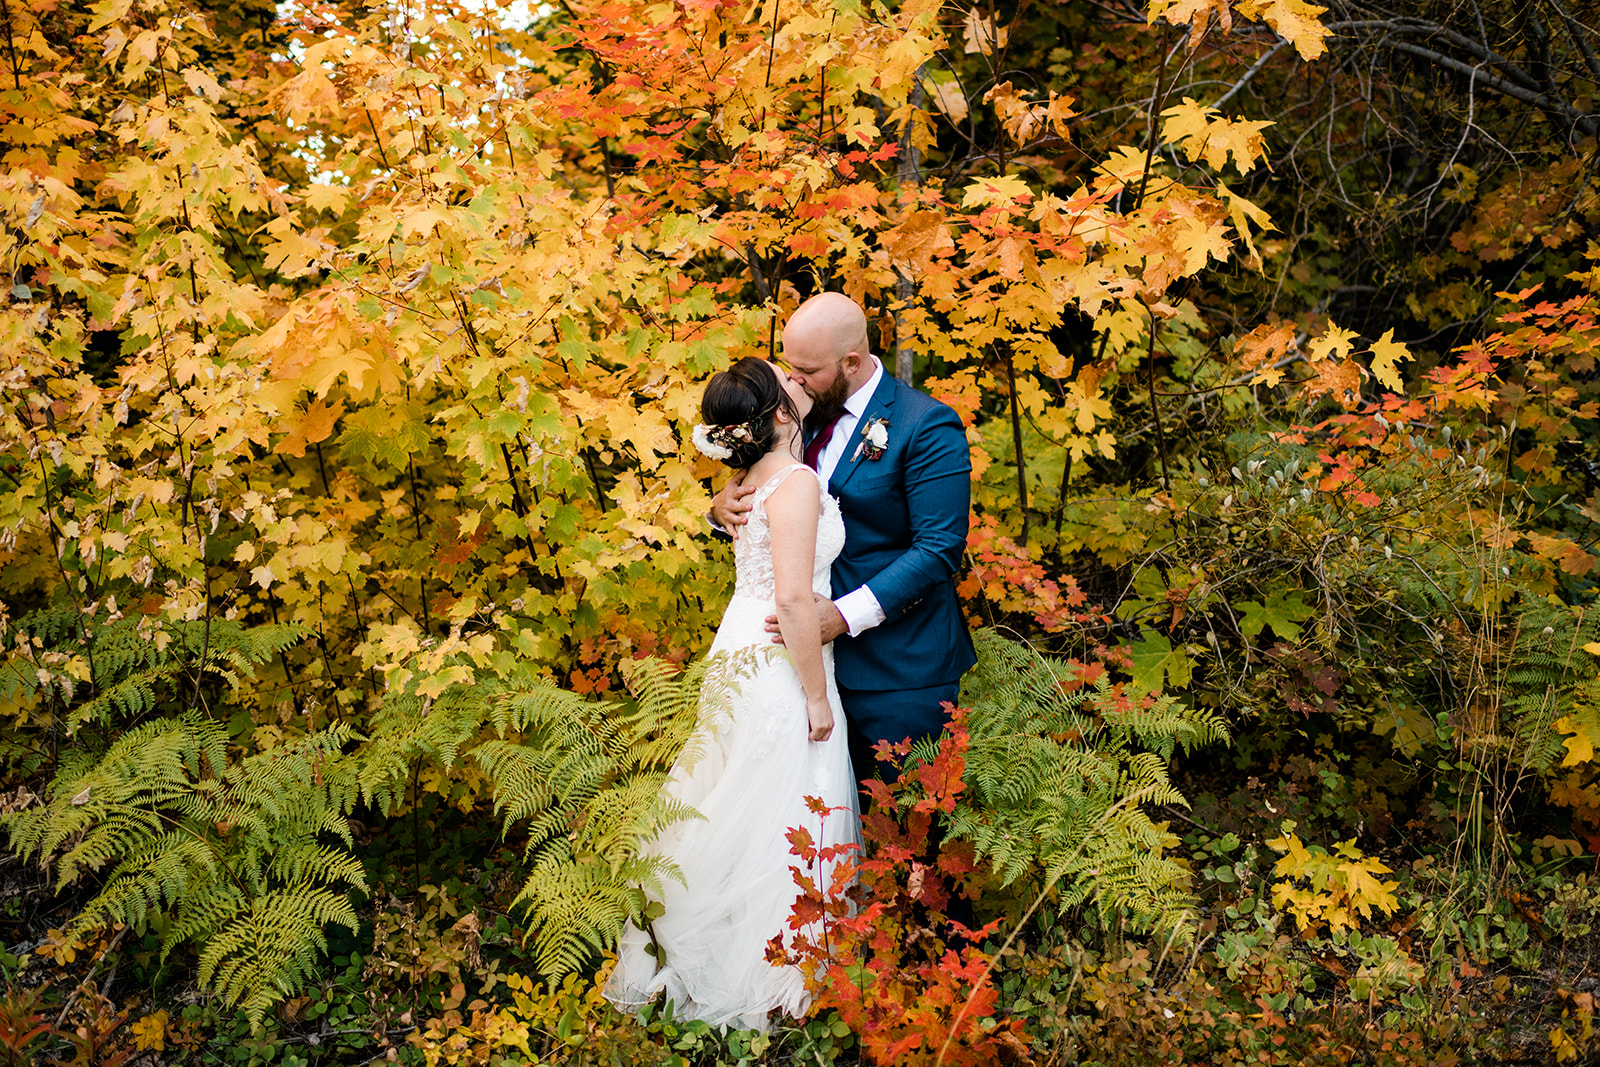 Fall foliage bridal portraits. Boho, Fall Mountain wedding in Leavenworth at Brown Family Homestead. Image by Forthright Photo.